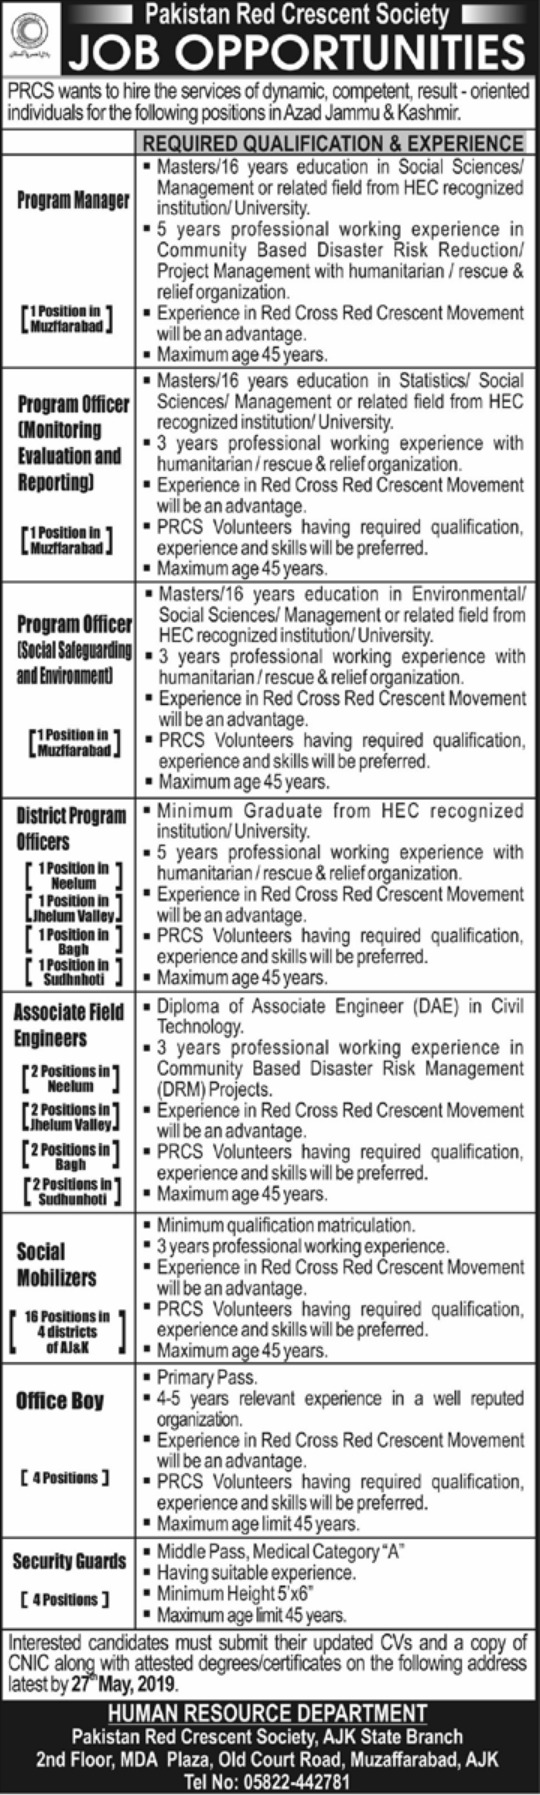 Get a Latest Jobs In Pakistan Red Crescent Society 2019